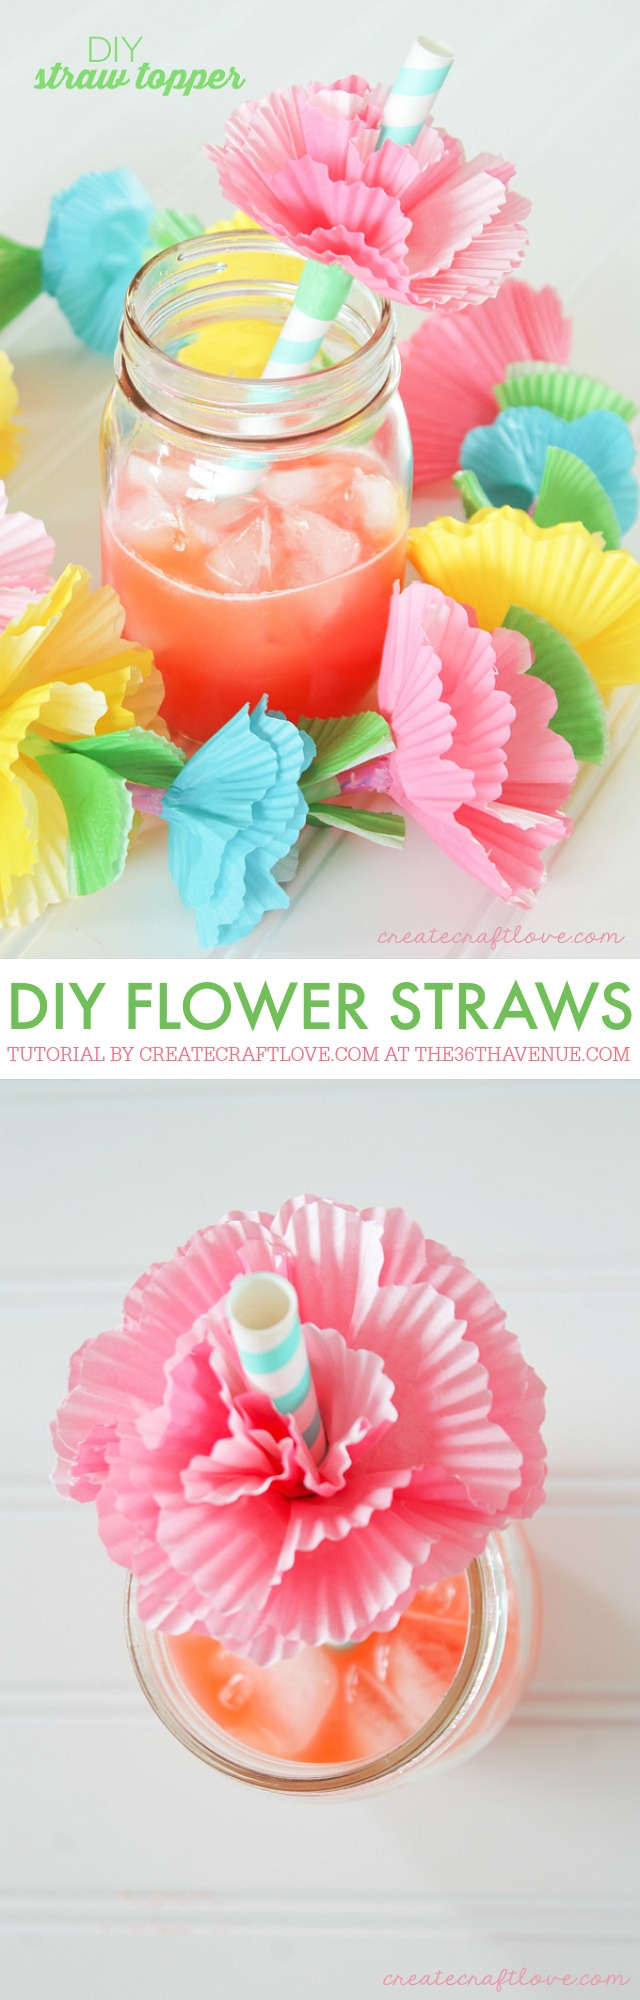 DIY Crafts - Add flare to your next summer gathering with these easy to make DIY Straw Toppers!  via createcraftlove.com for the36thavenue.com